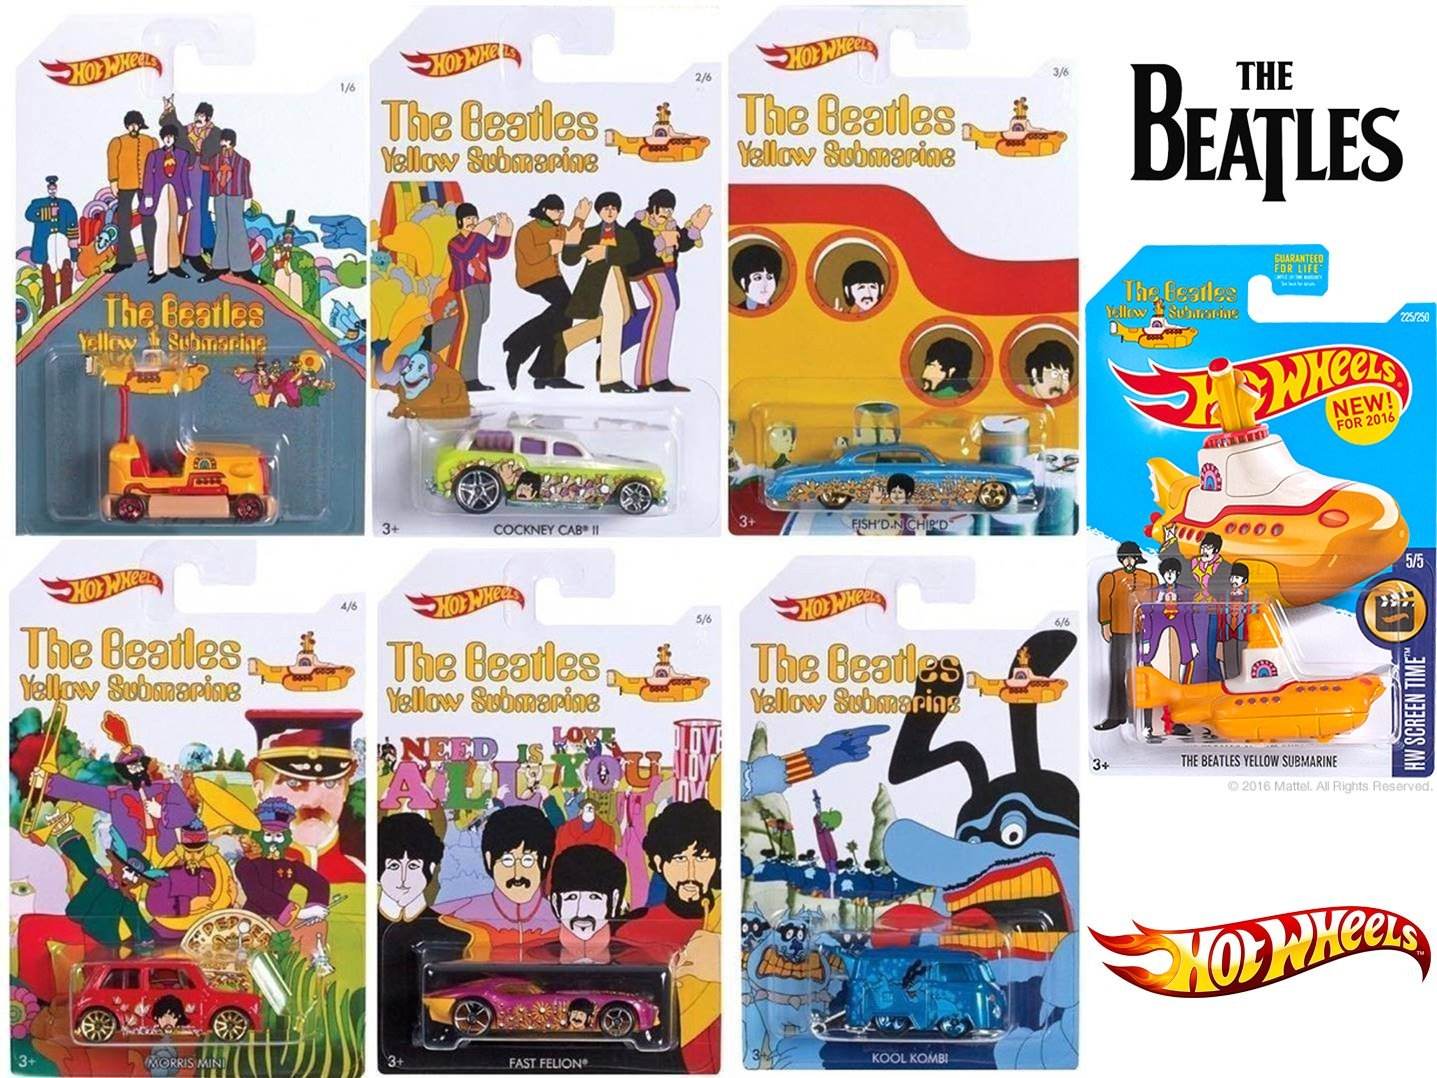 Beatles Hot Wheels Yellow Submarine New Model 2016 Complete Exclusive car set Blue Meanie Kool Kombi / Bump Around Cockney Cab / Fish'd N Chip'd - Morris Mini - Fast Felion rock band Limited Edition